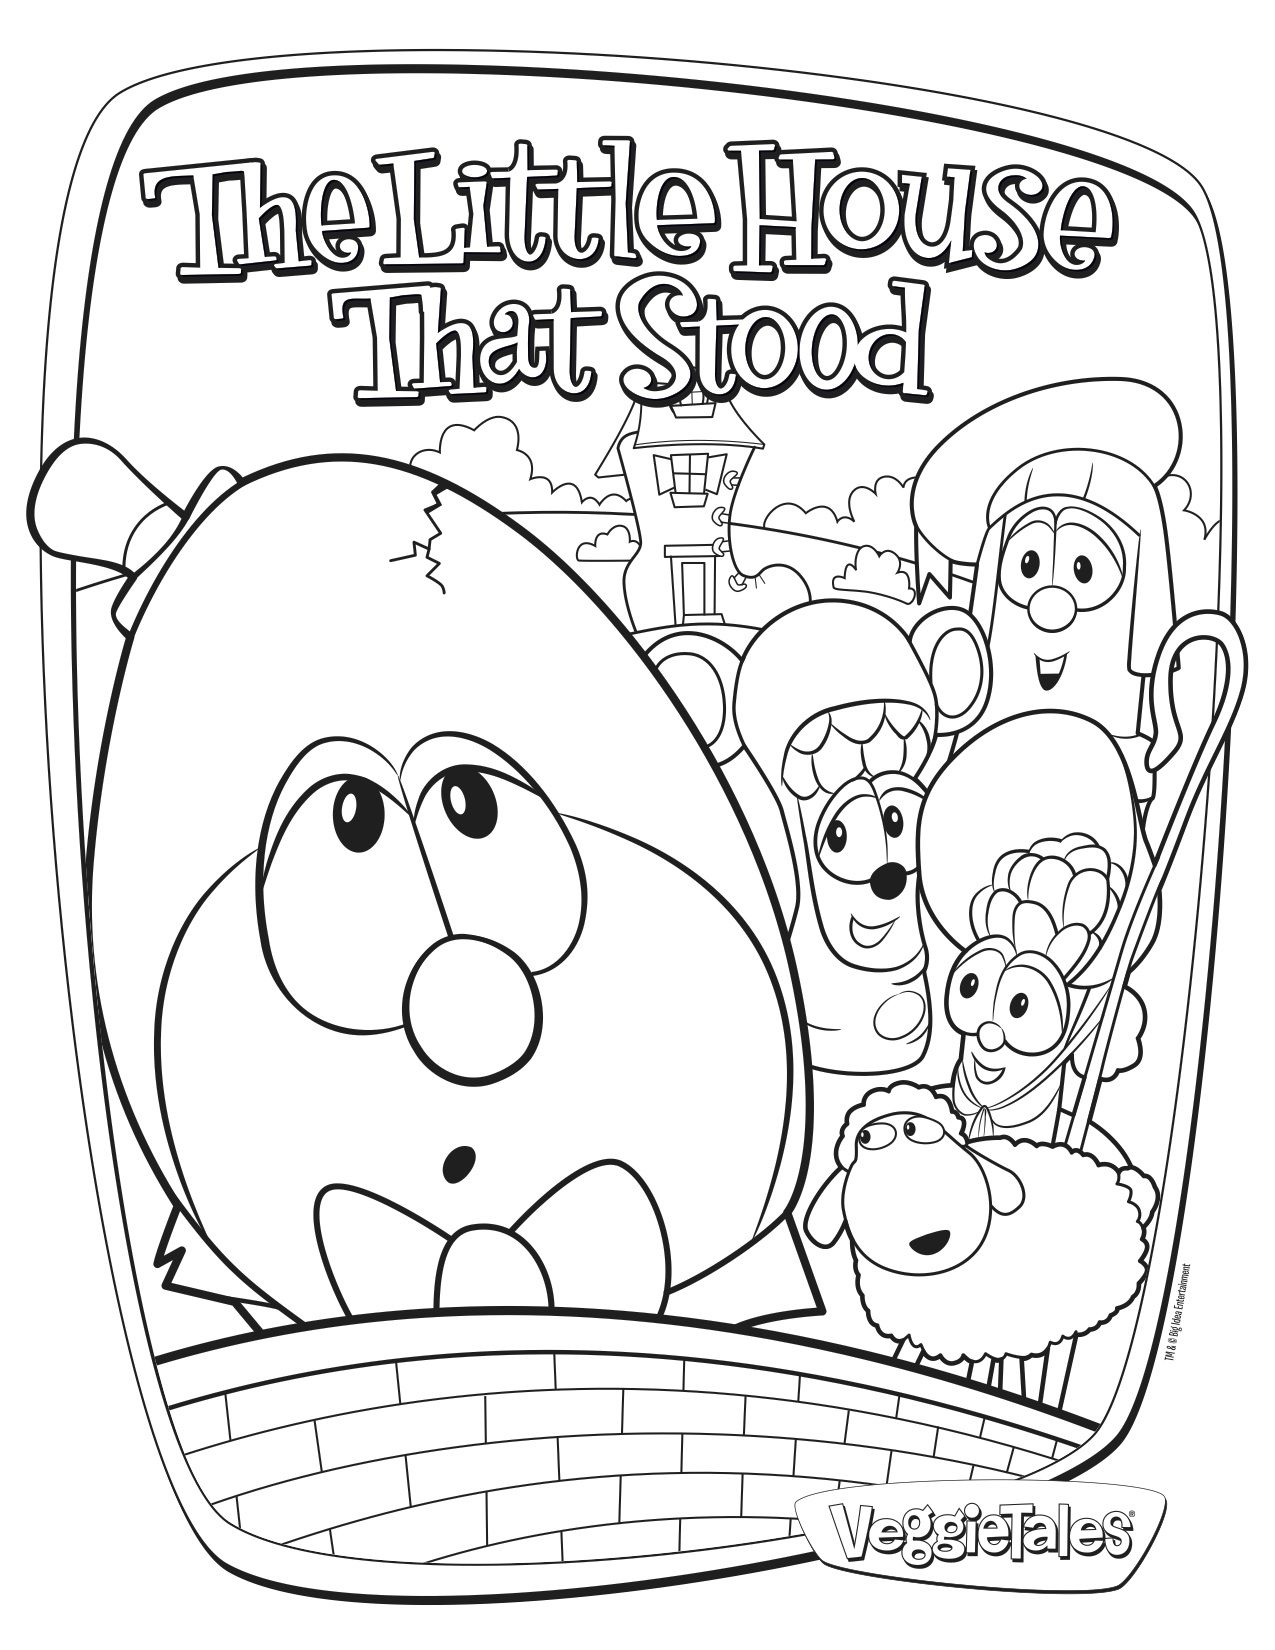 Free coloring page featuring The Little House That Stood! | Crafts ...